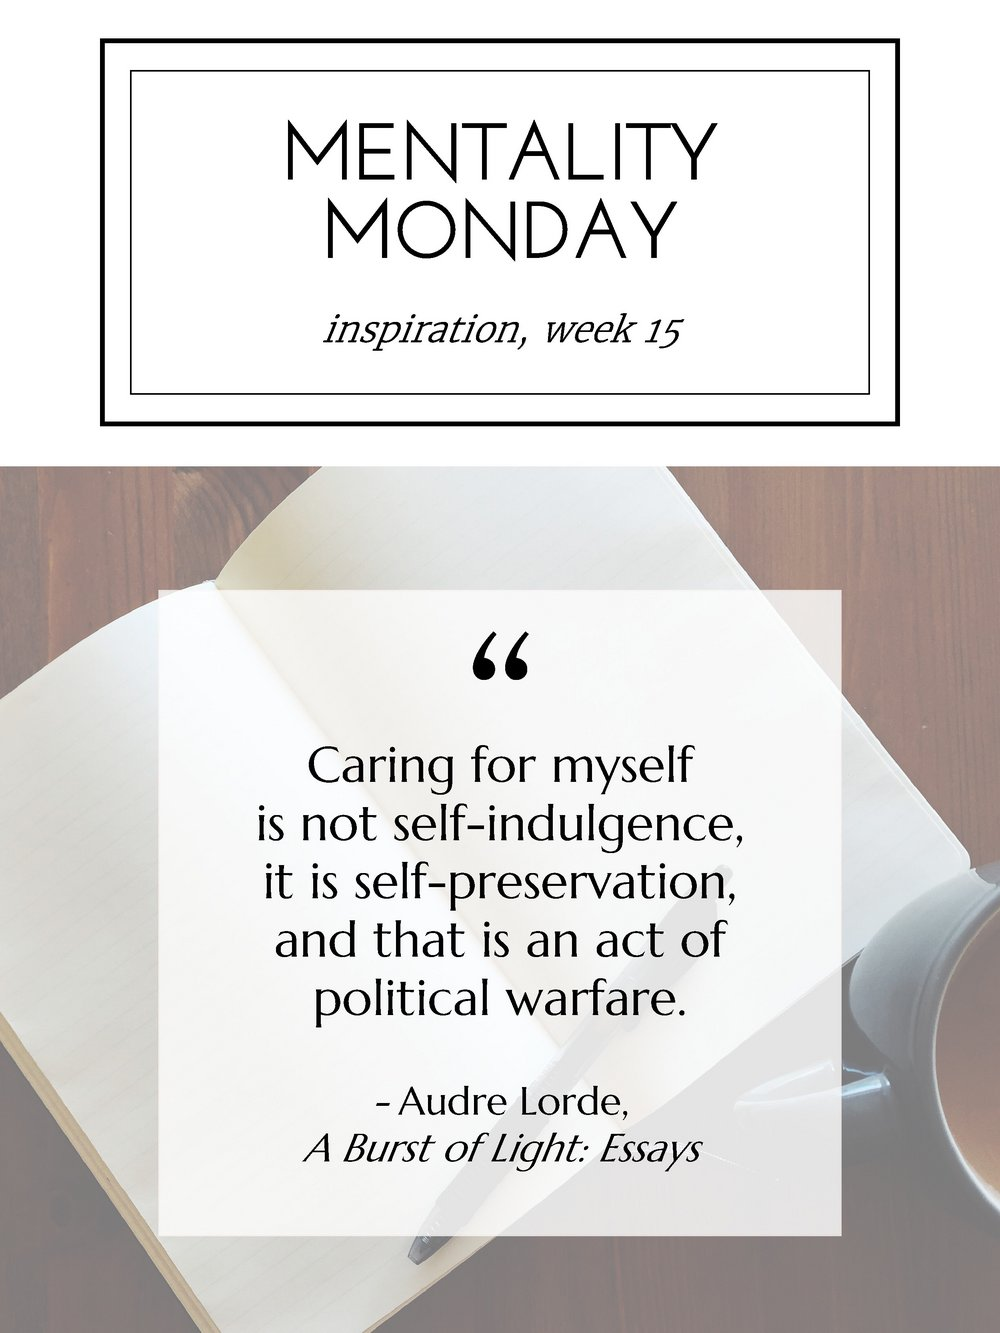 """Mentality Monday, """"Caring for myself is not self-indulgence, it is self-preservation, and that is an act of political warfare."""" - Audre Lorde, A Burst of Light: Essays"""